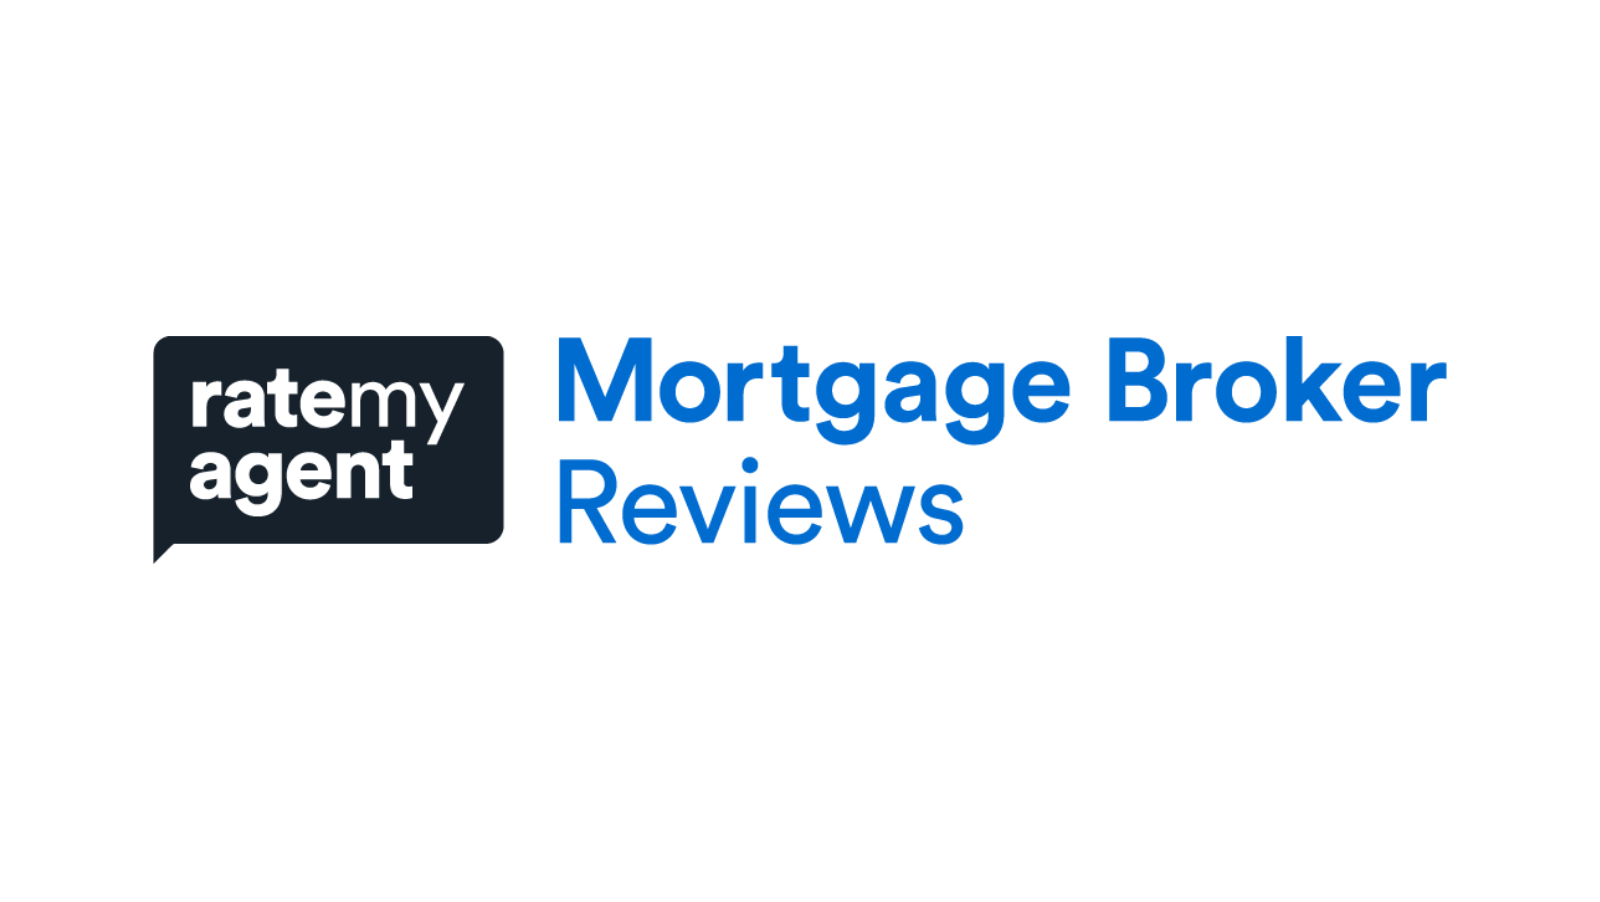 Media Release : RateMyAgent Launches New Mortgage Broker Reviews and Digital Marketing Solution